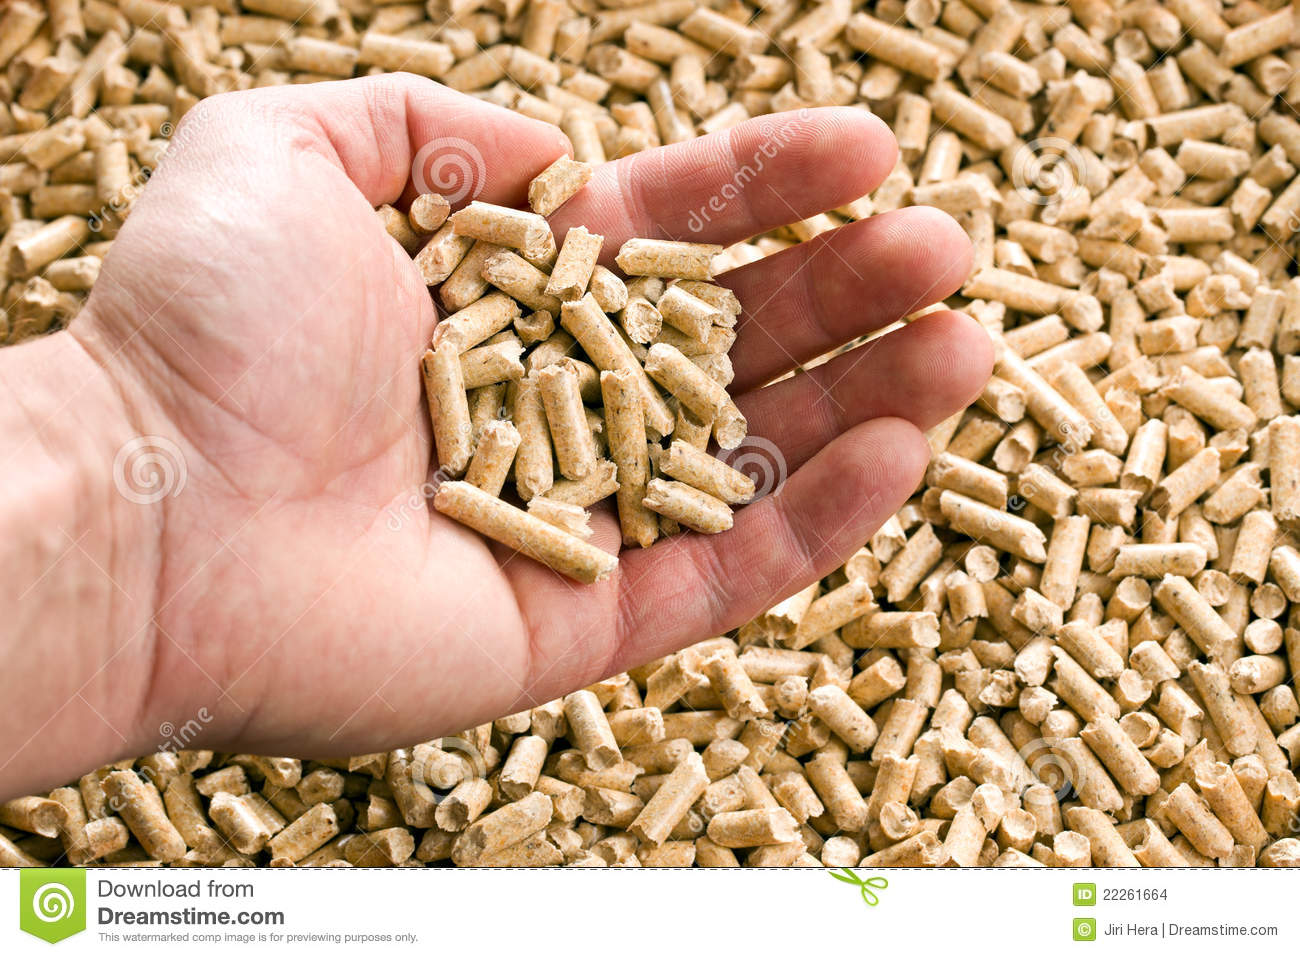 Wooden pellet ecological heating stock photo image